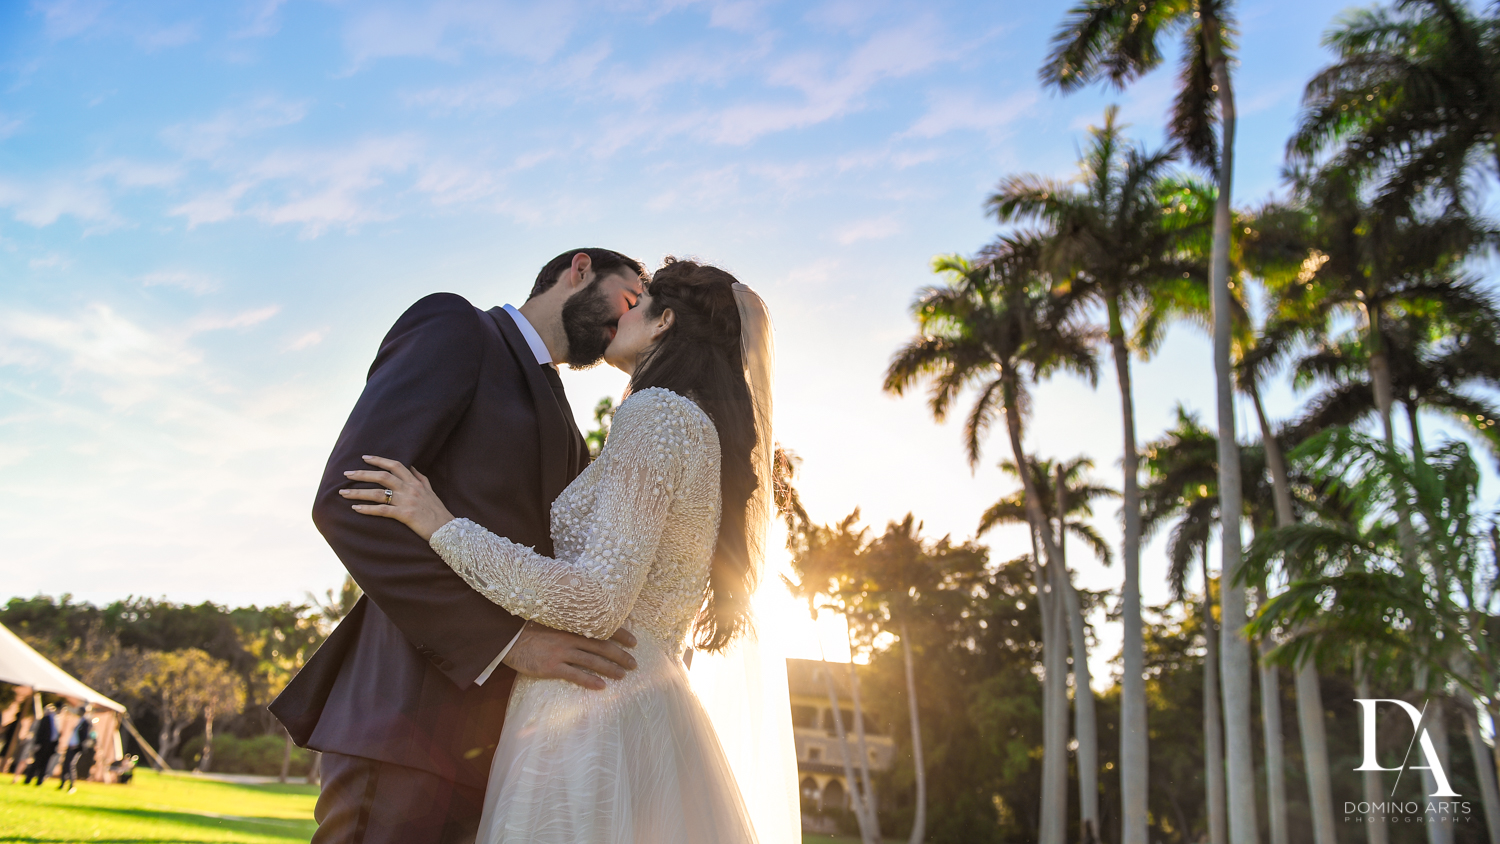 sunset kiss at Traditional Jewish Wedding at Deering Estate Miami by Domino Arts Photography